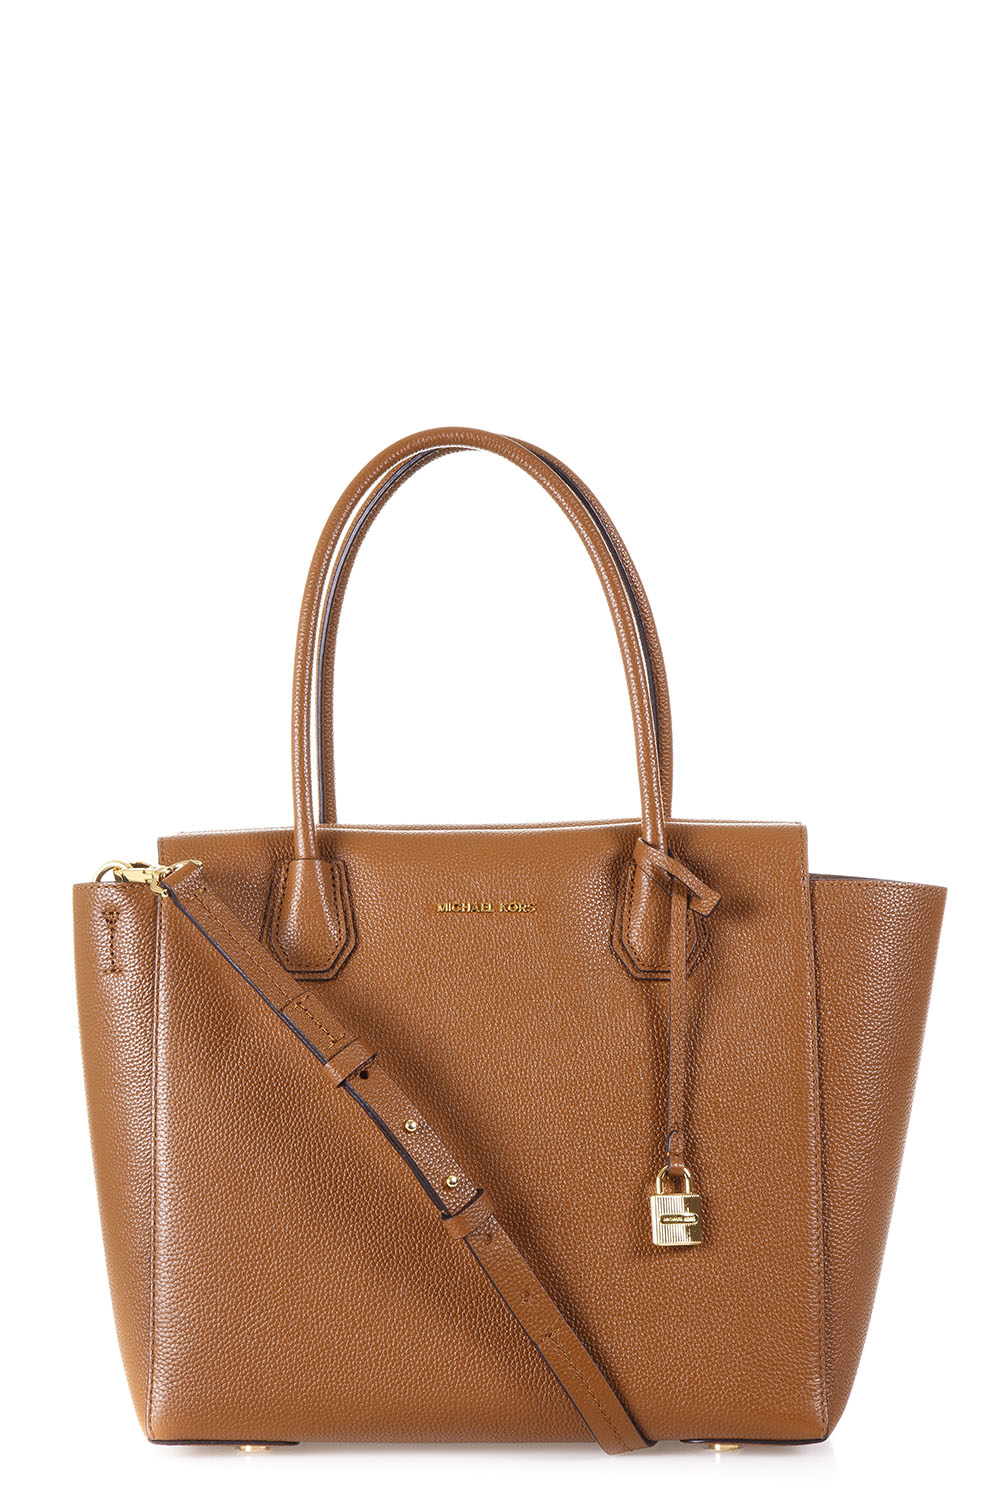 fdd9e32a1322 LARGE MERCER LEATHER TOTE SS 2017 - MICHAEL MICHAEL ...